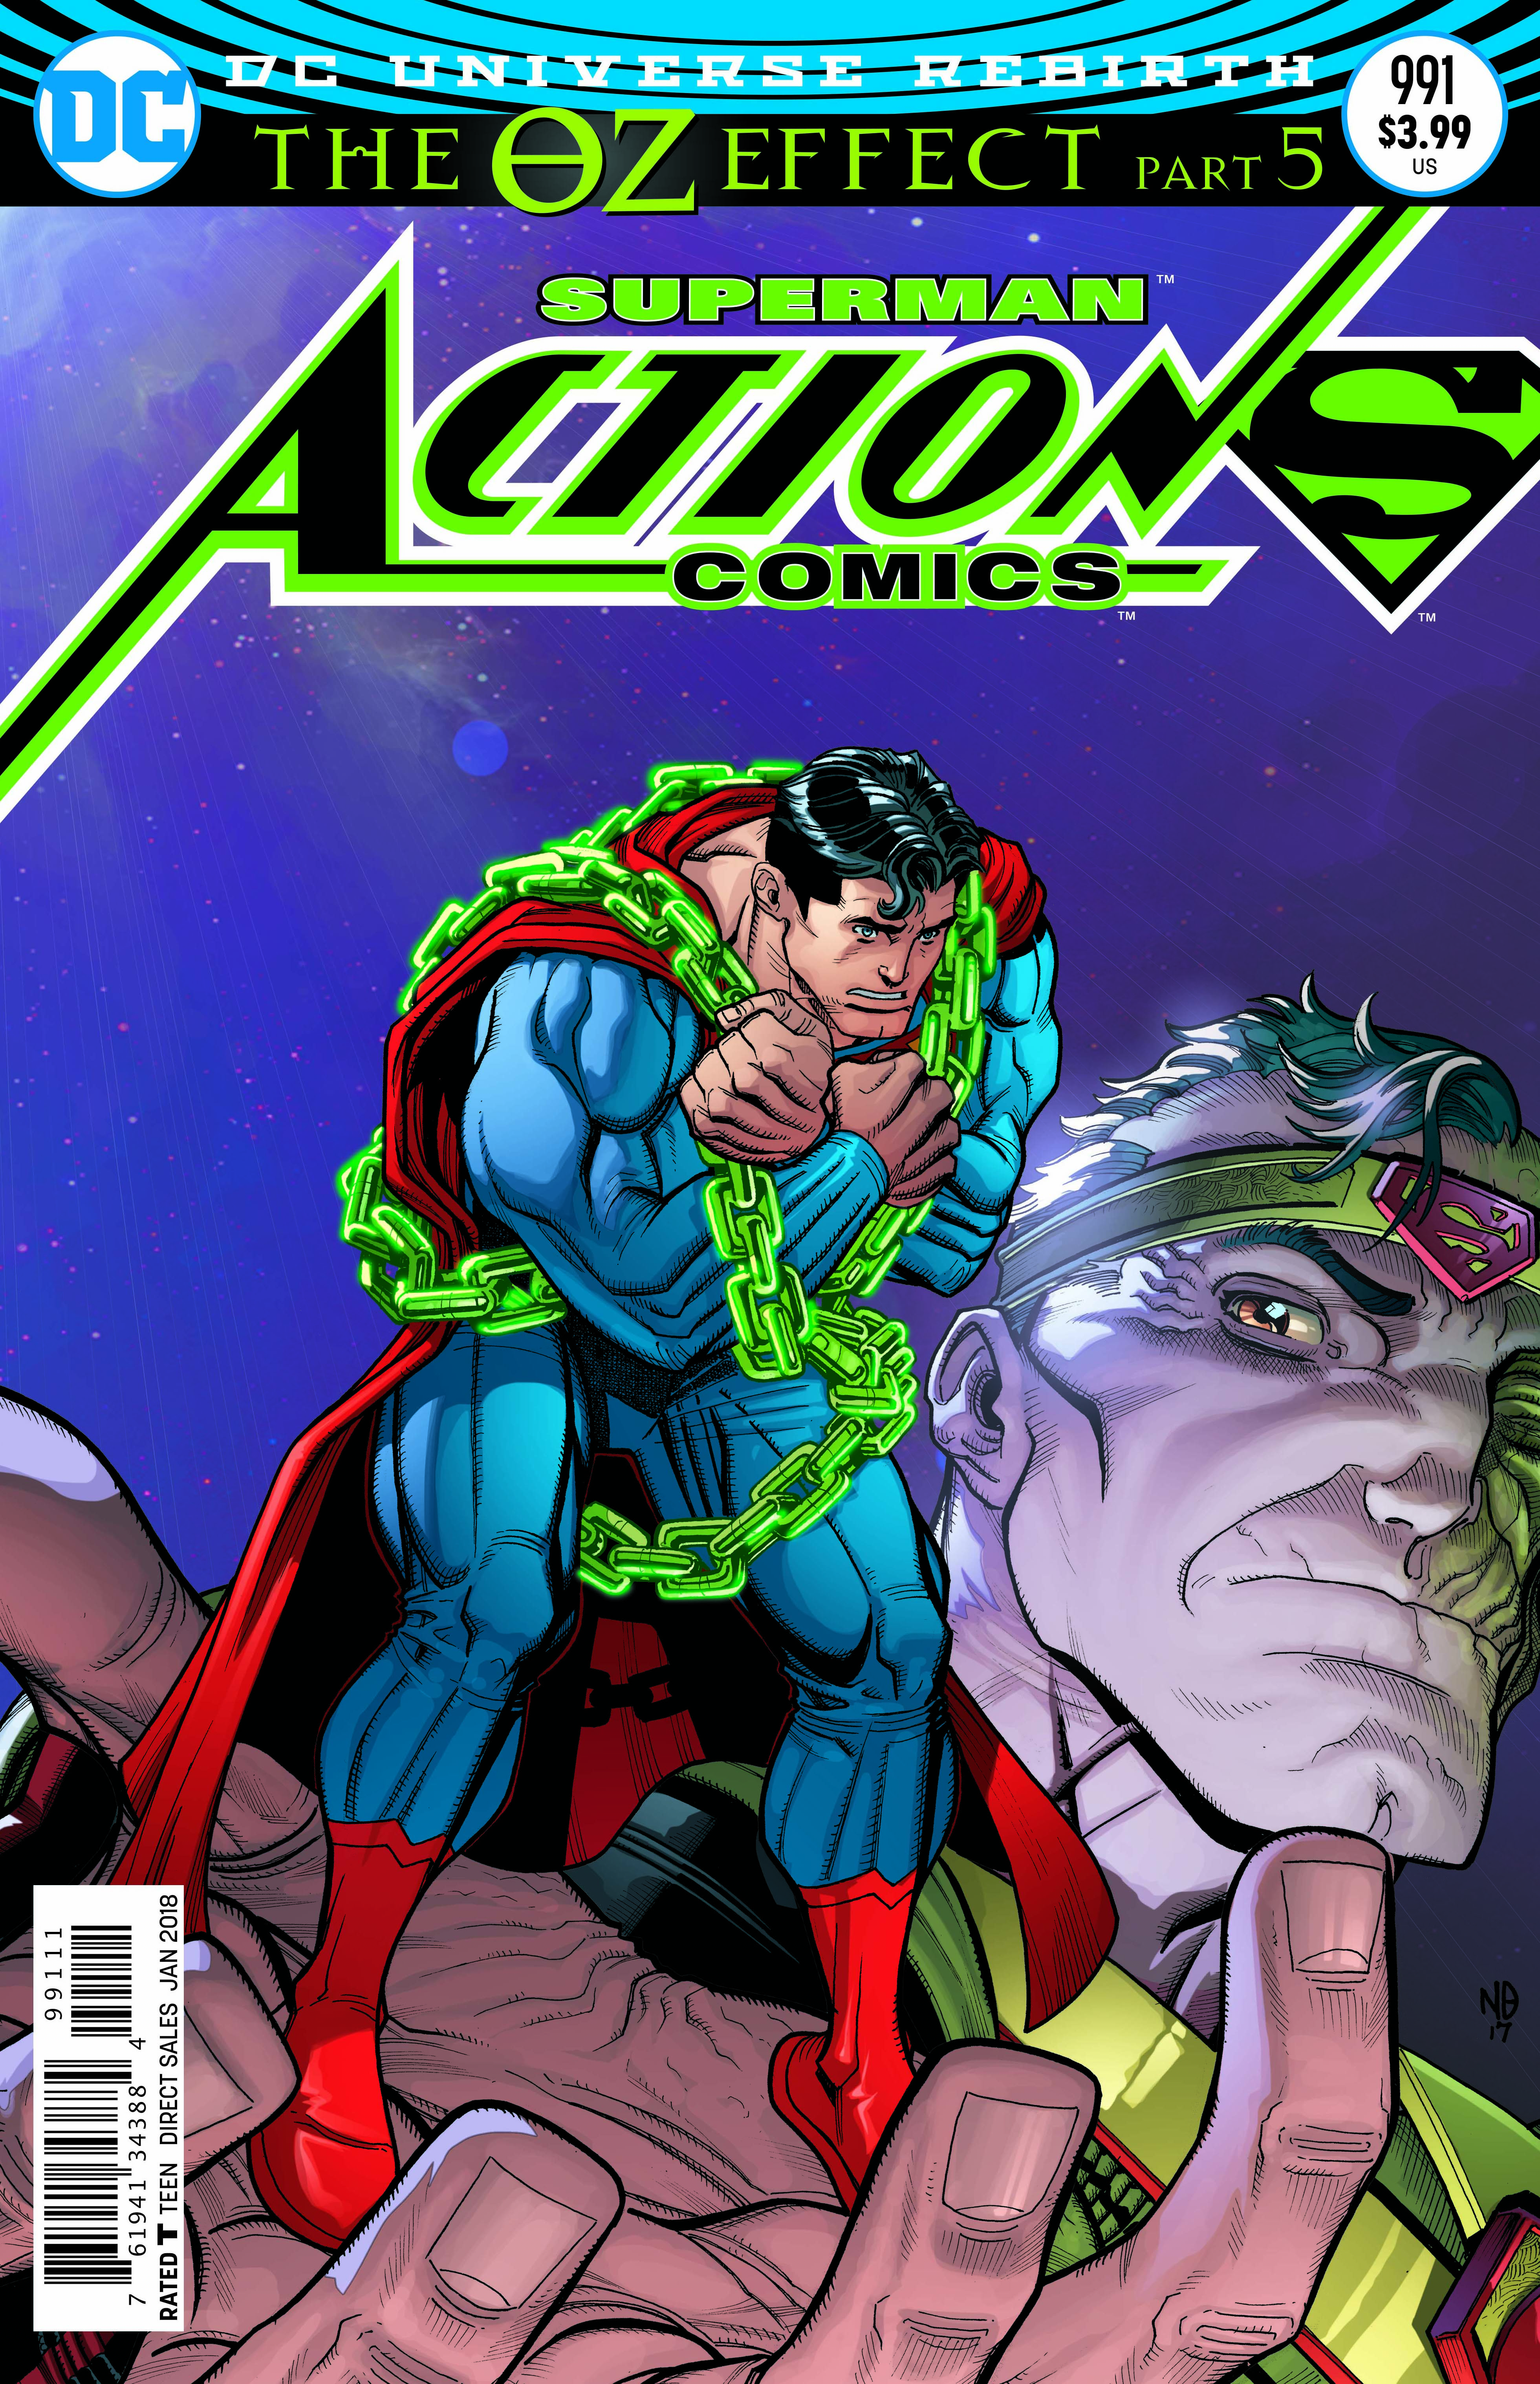 ACTION COMICS #991 LENTICULAR ED